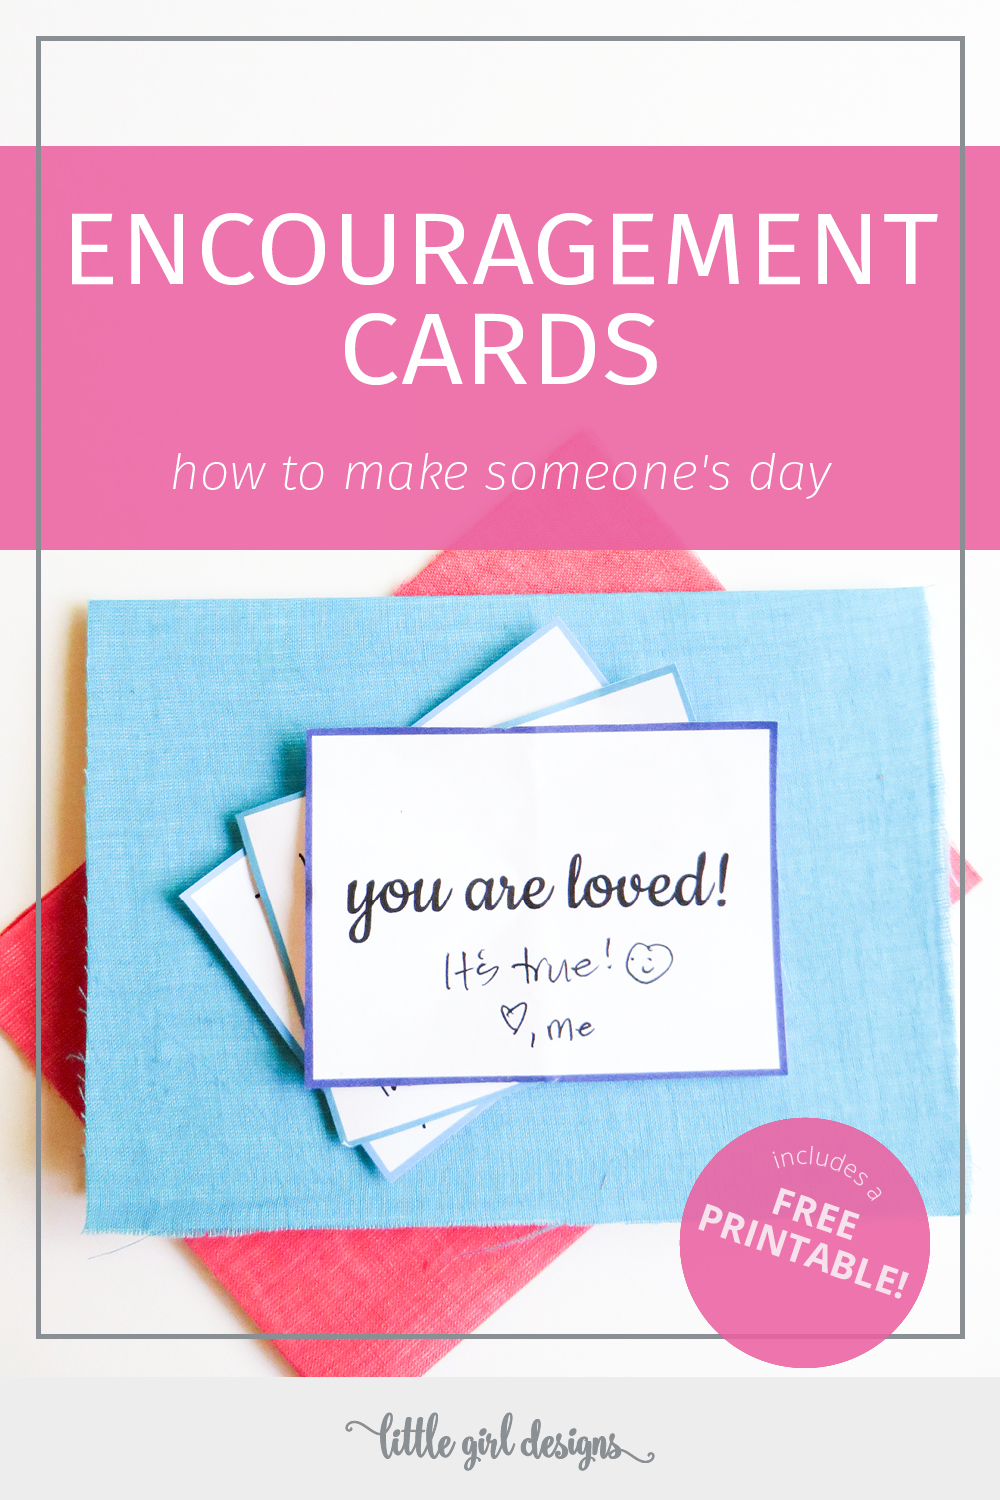 How to make encouragement cards plus a free printable to make your own! @ littlegirldesigns.com